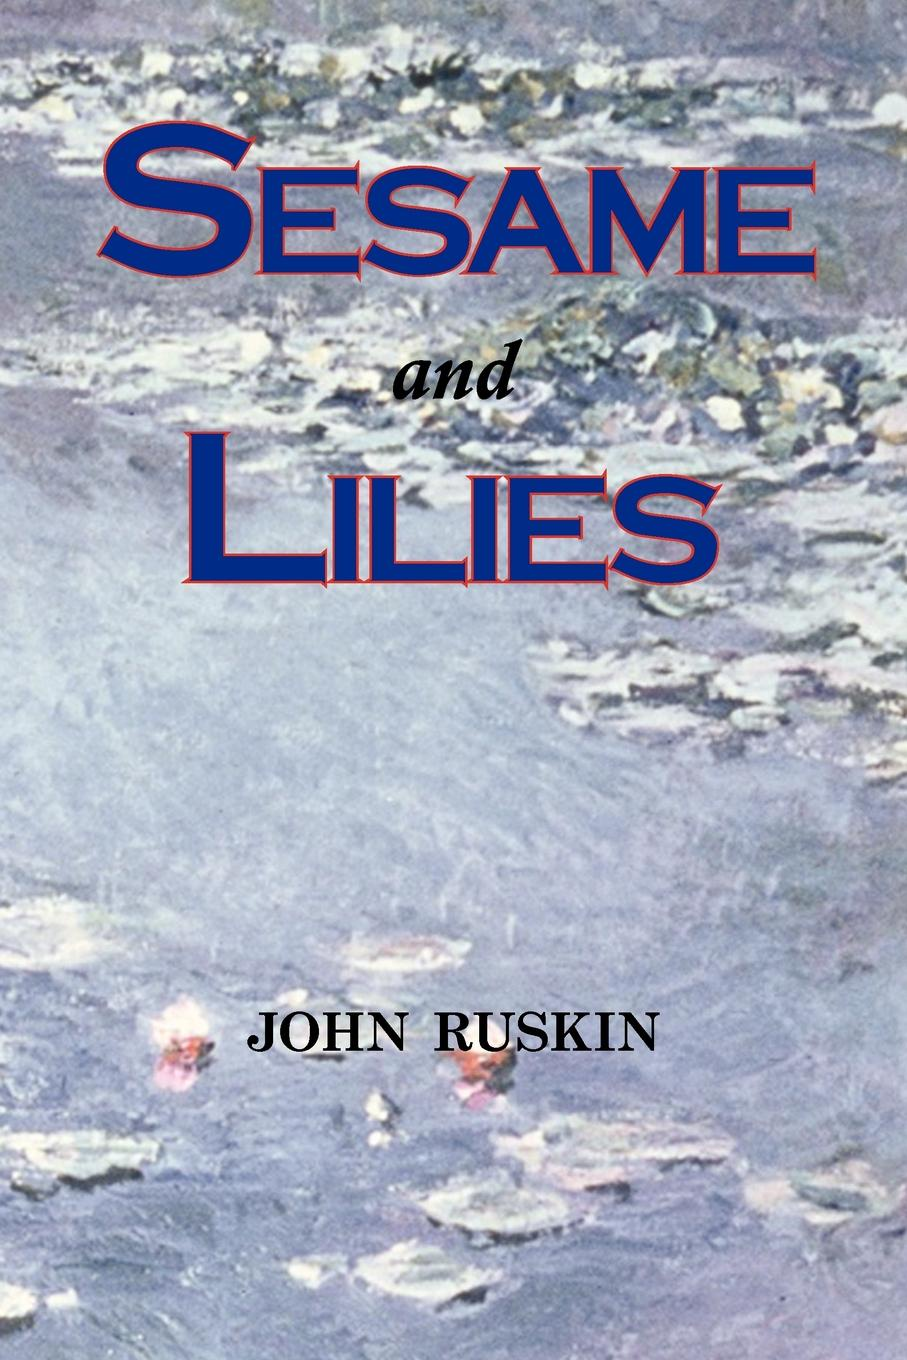 John Ruskin Sesame and Lilies (Lectures) john ruskin love s meinie three lectures on greek and english birds